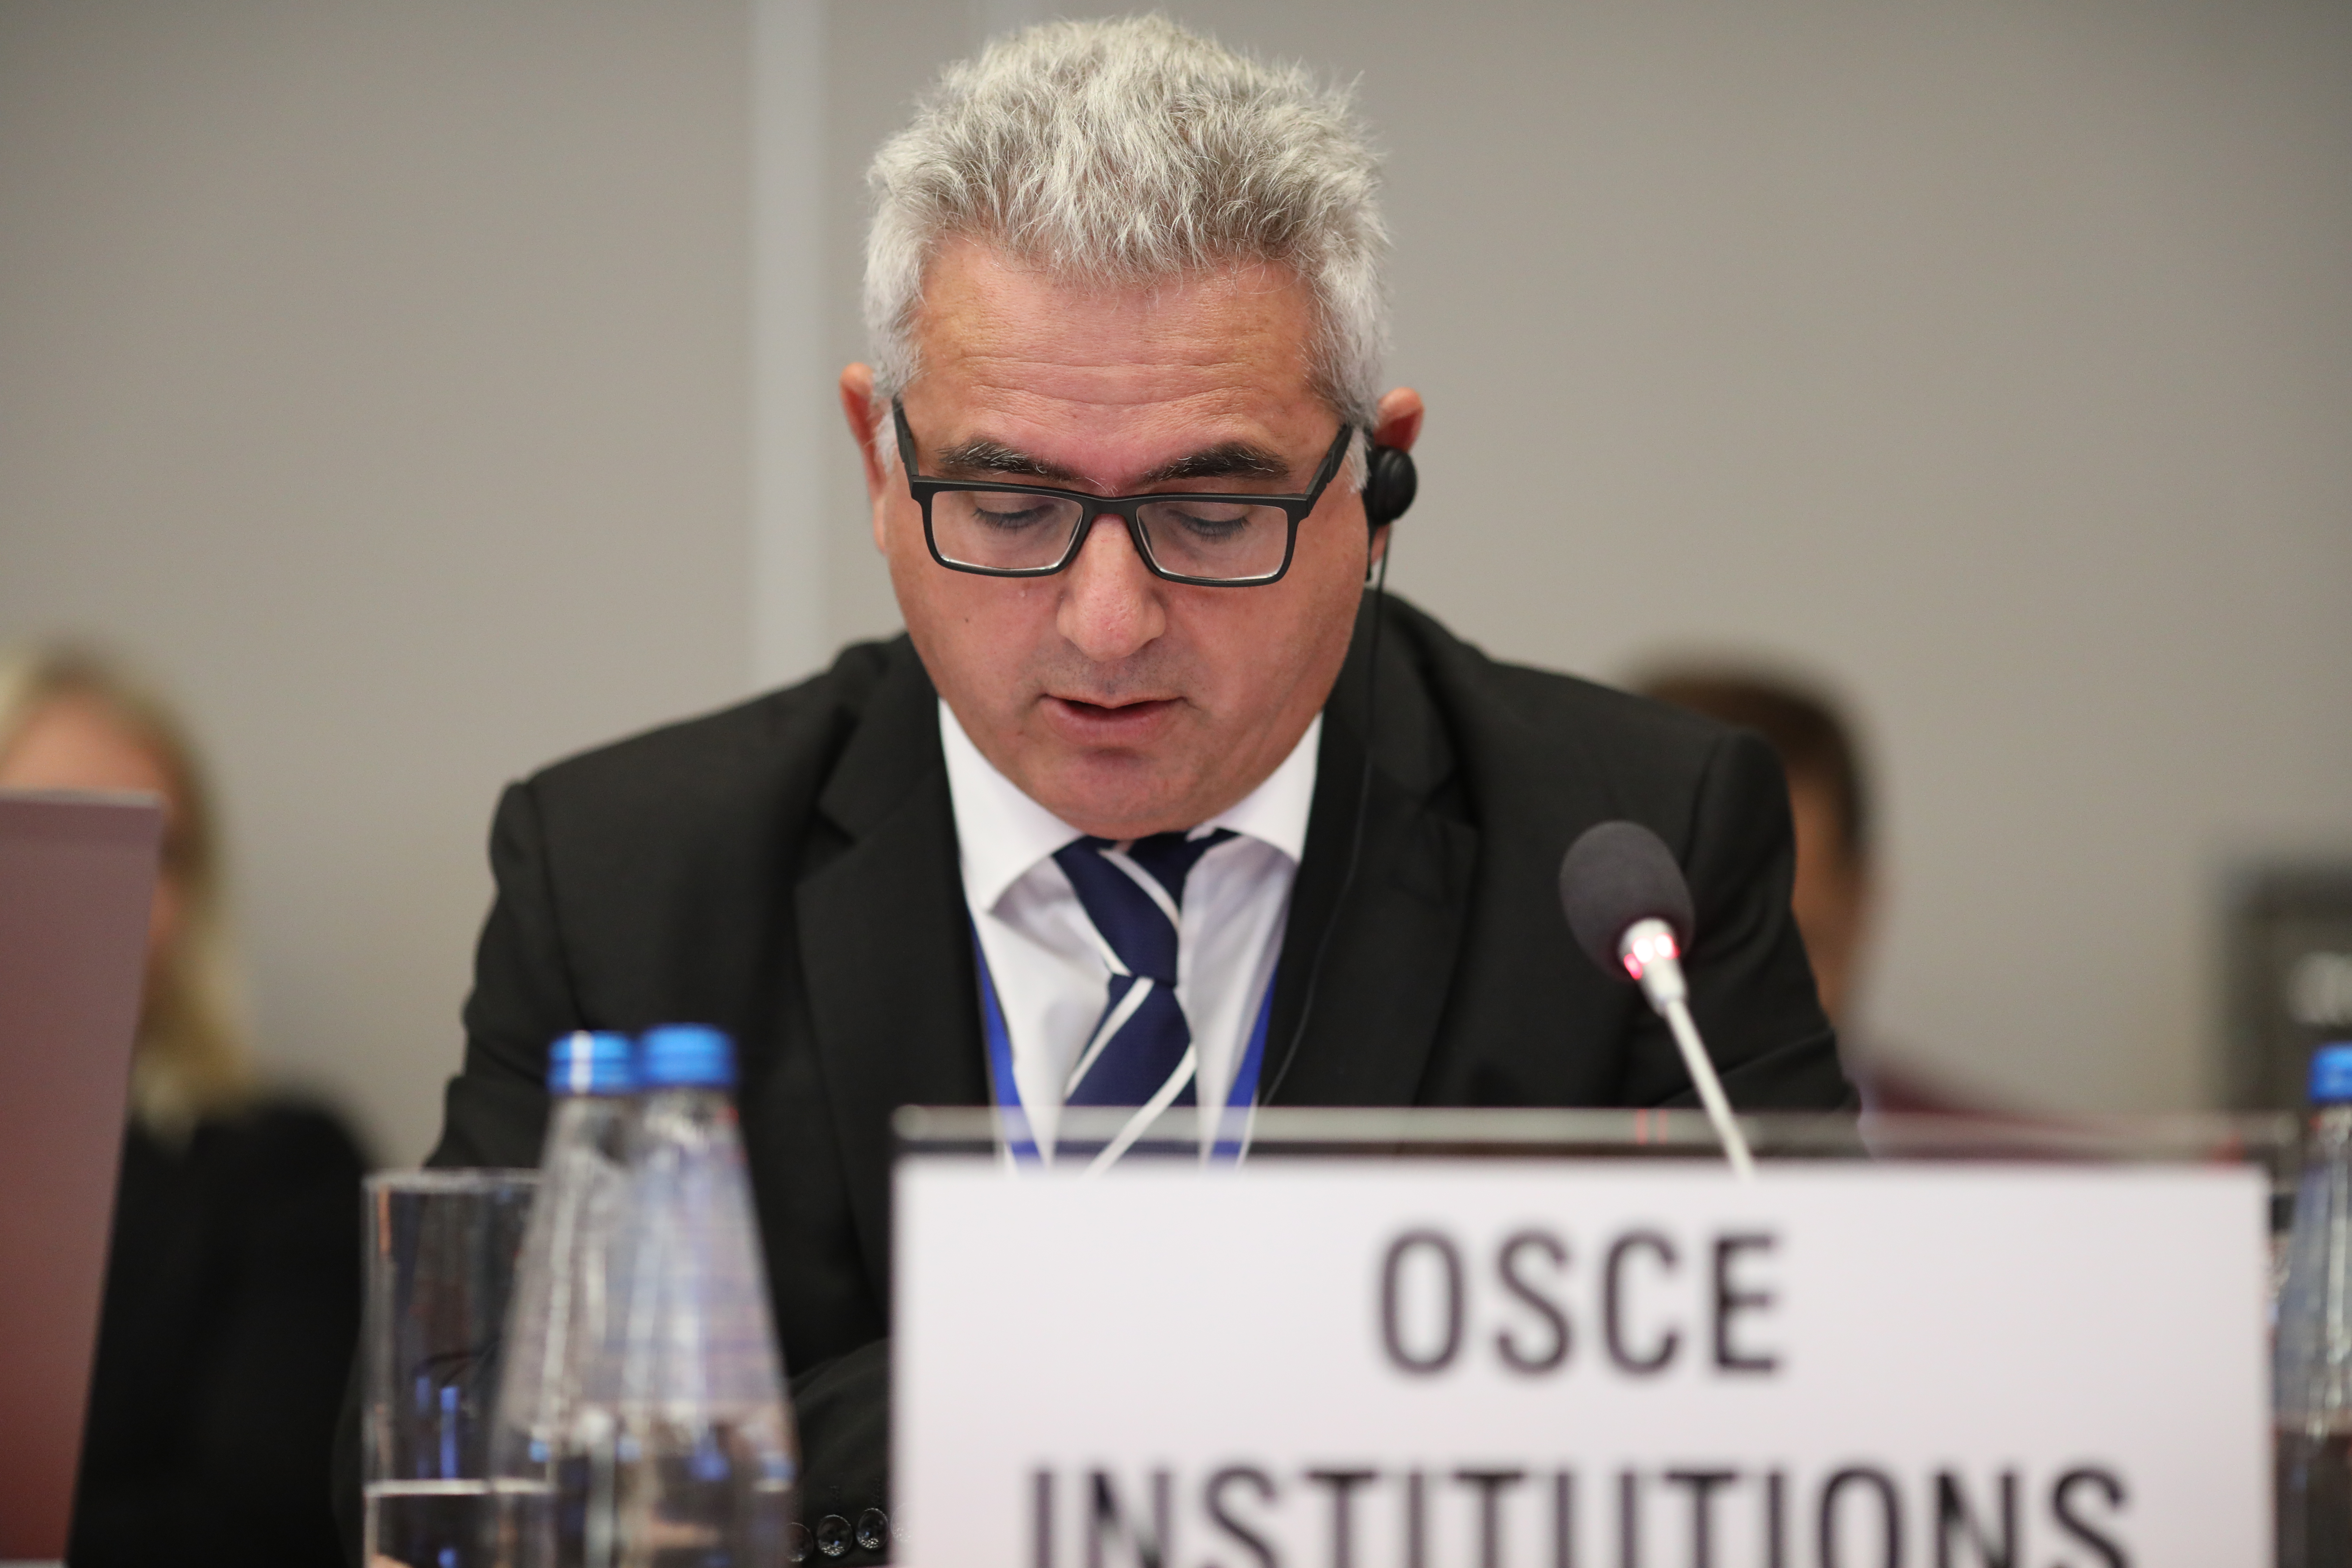 Human rights committee Rapporteur Kyriakos Hadjiyianni delivers remarks at freedom of the media session at 2018 HDIM in Warsaw